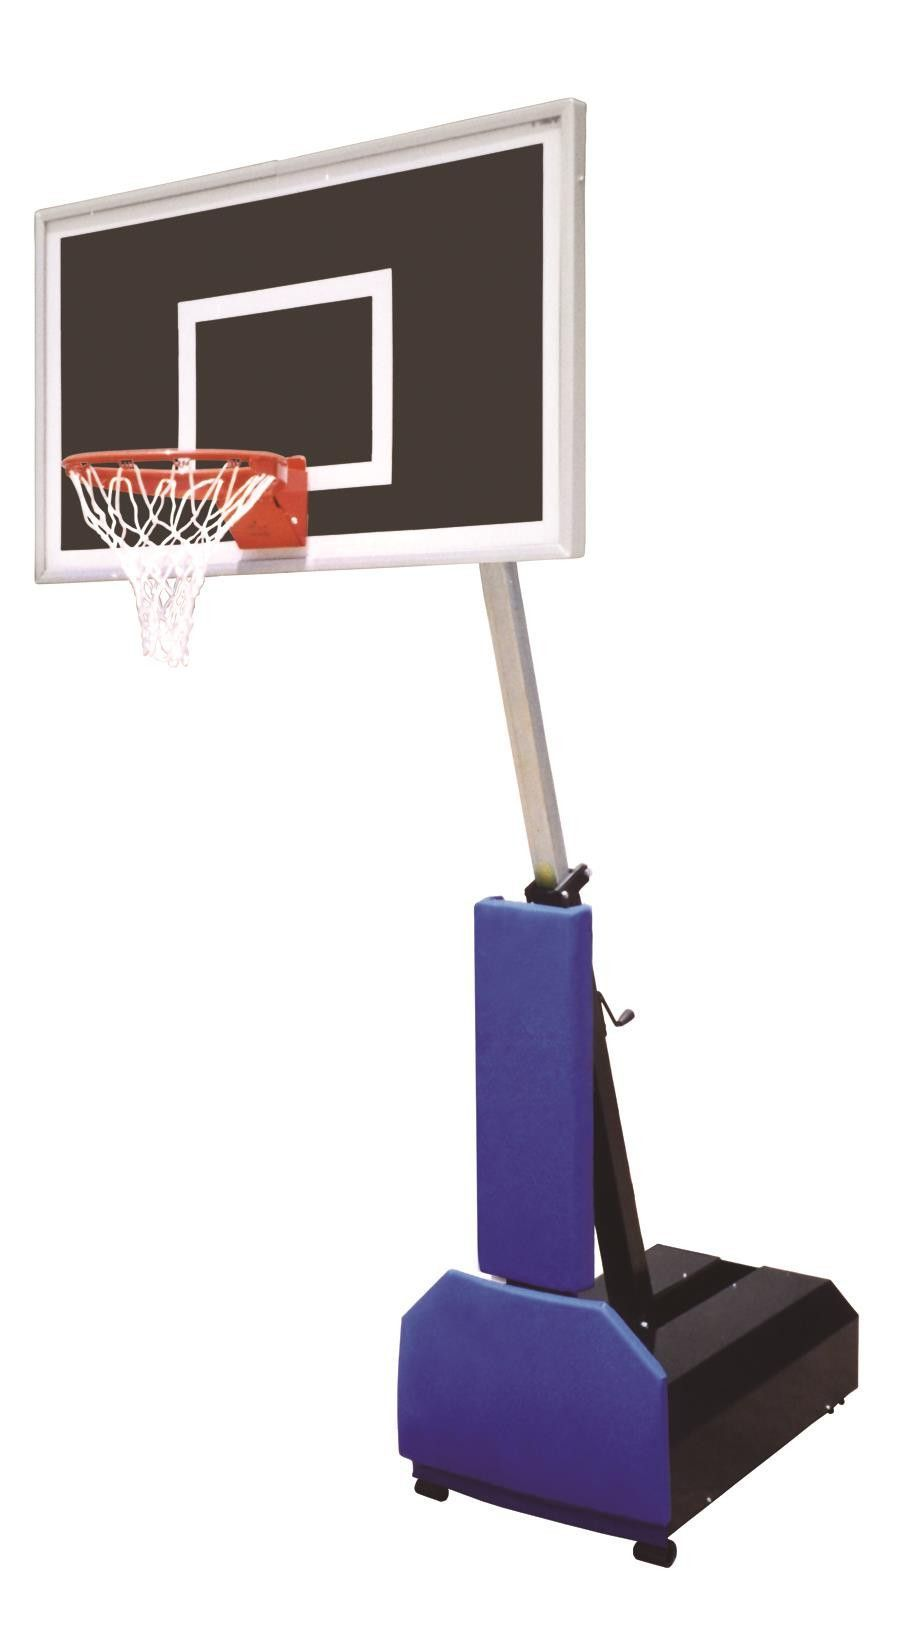 First Team Fury Eclipse Adjustable Portable Basketball Hoop 60 inch Smoked Glass from NJ Swingsets